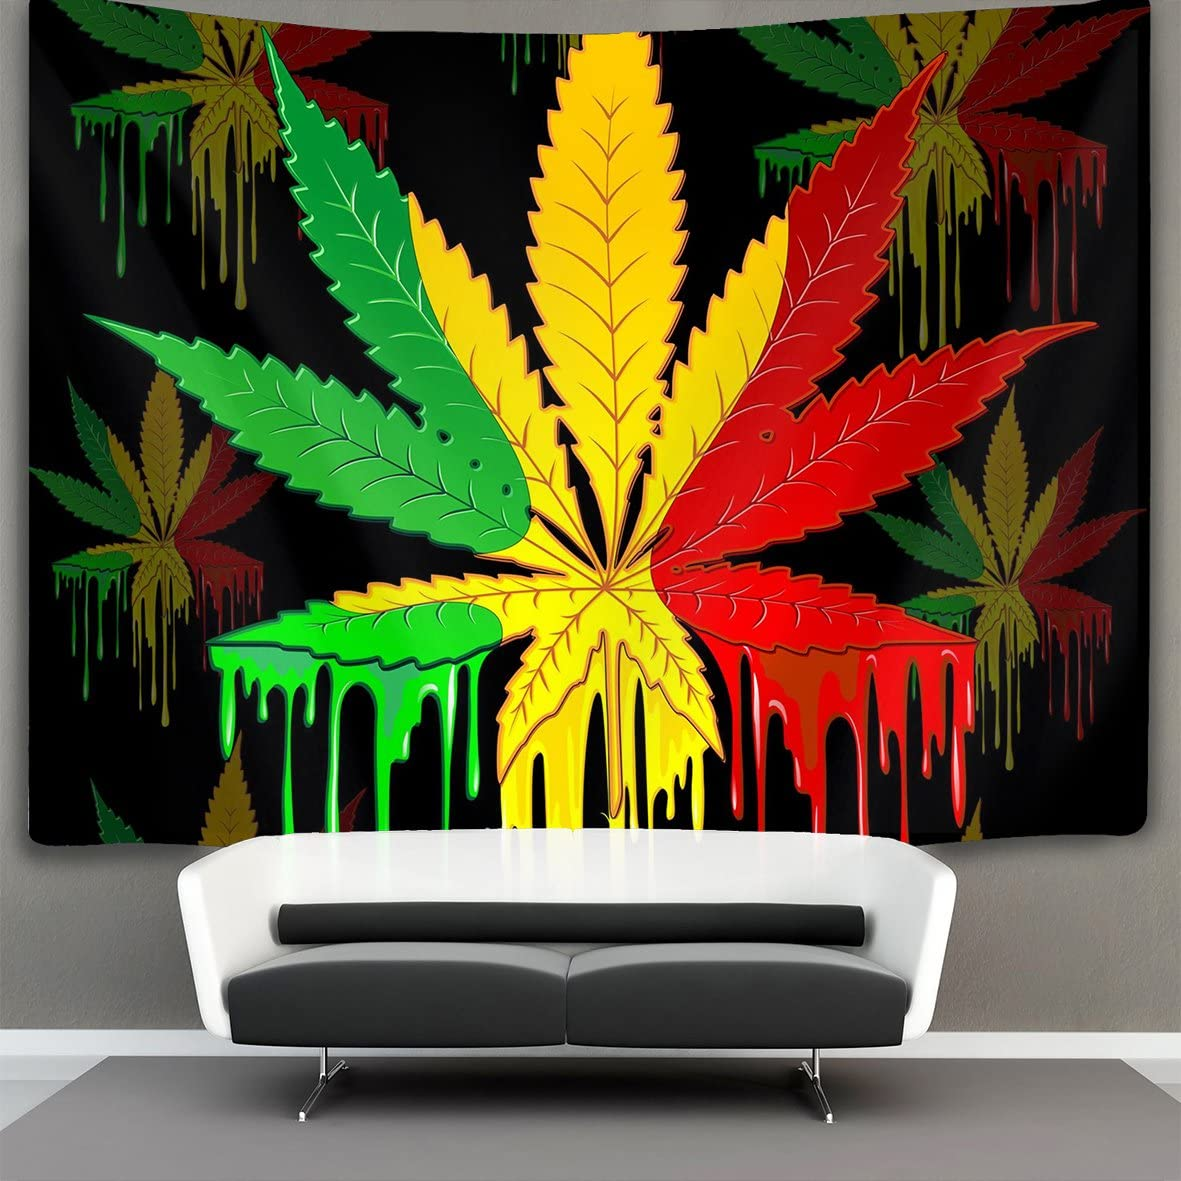 NiYoung Rasta Marijuana Leaf Weed Cannabis Wall Tapestry Hippie Art Tapestry Wall Hanging Home Decor Extra Large tablecloths 60×90 inches for Bedroom Living Room Dorm Room